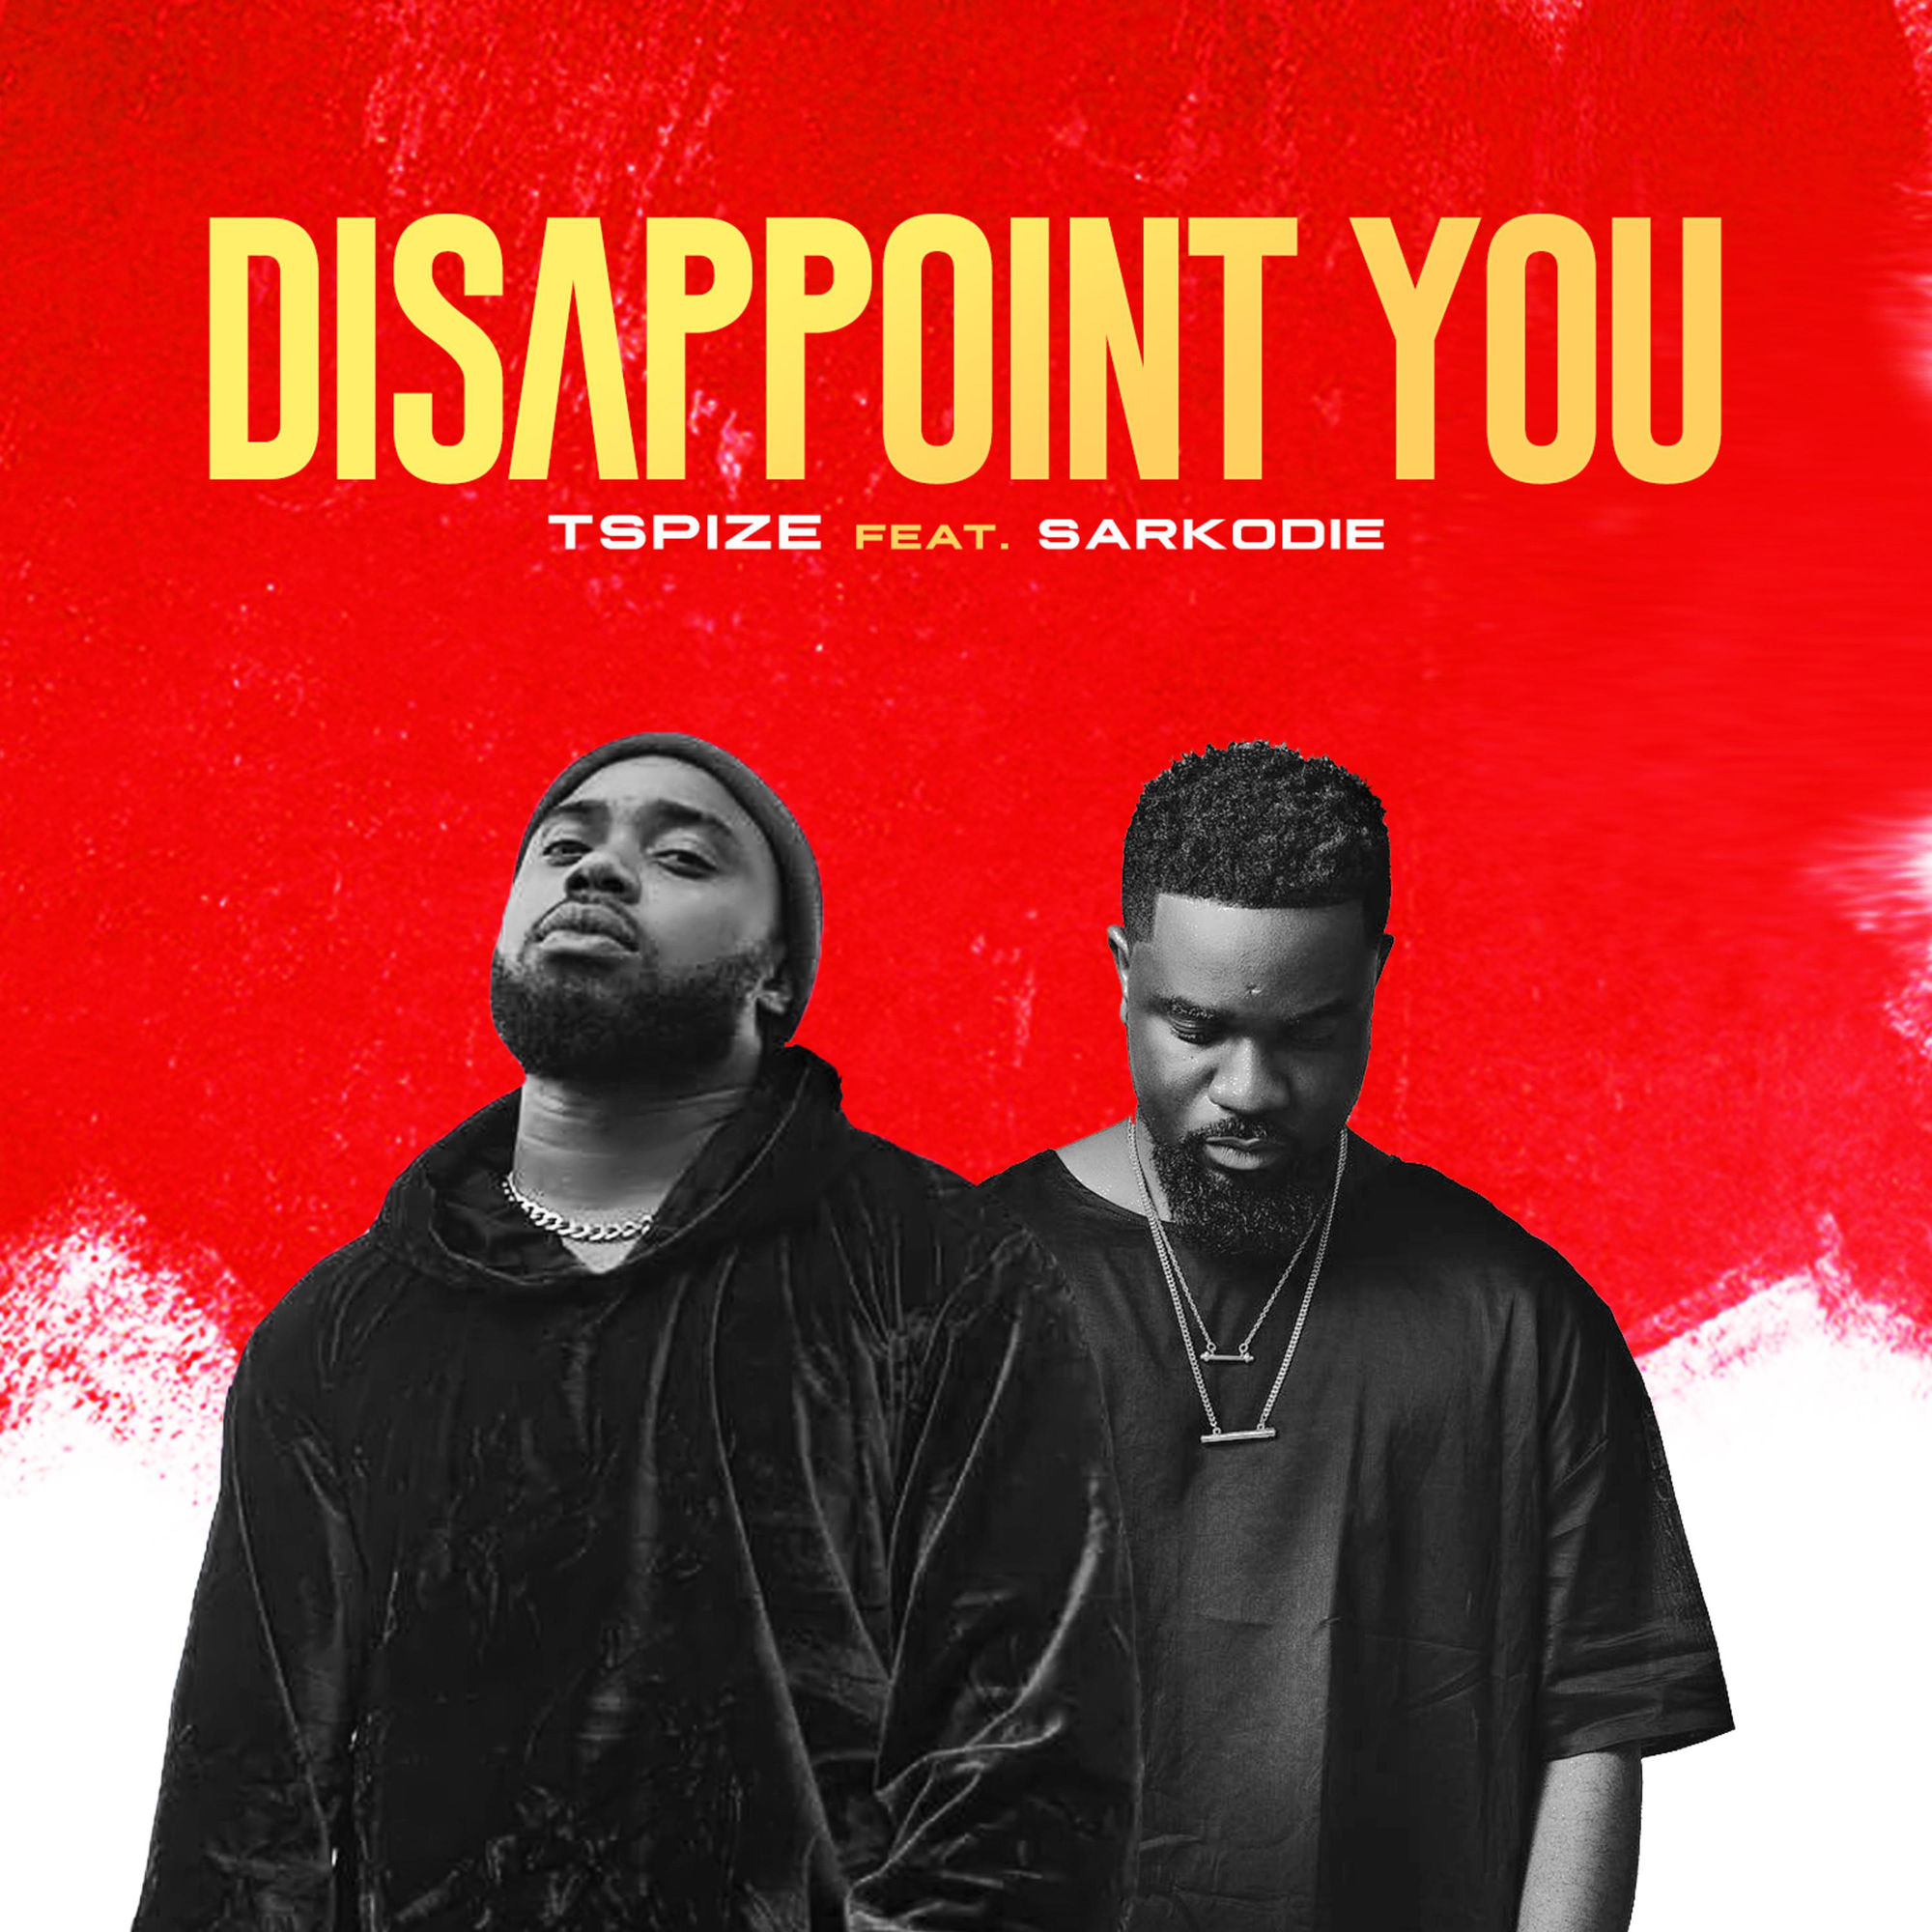 Tspize ft. Sarkodie - Dissapoint You